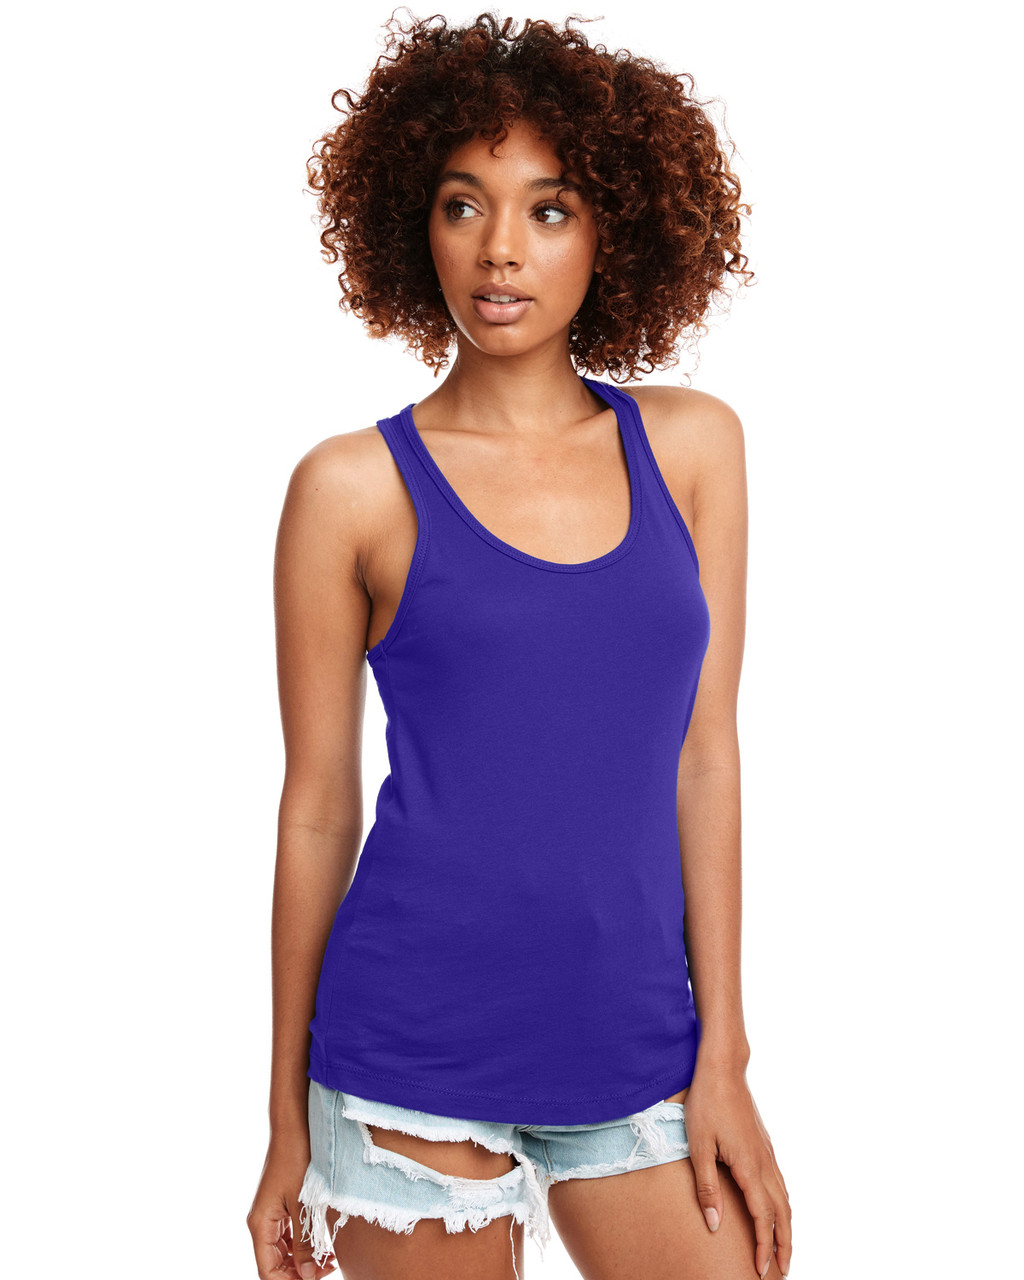 Purple - N1533 Next Level Ideal Racerback Tank Top | Blankclothing.ca